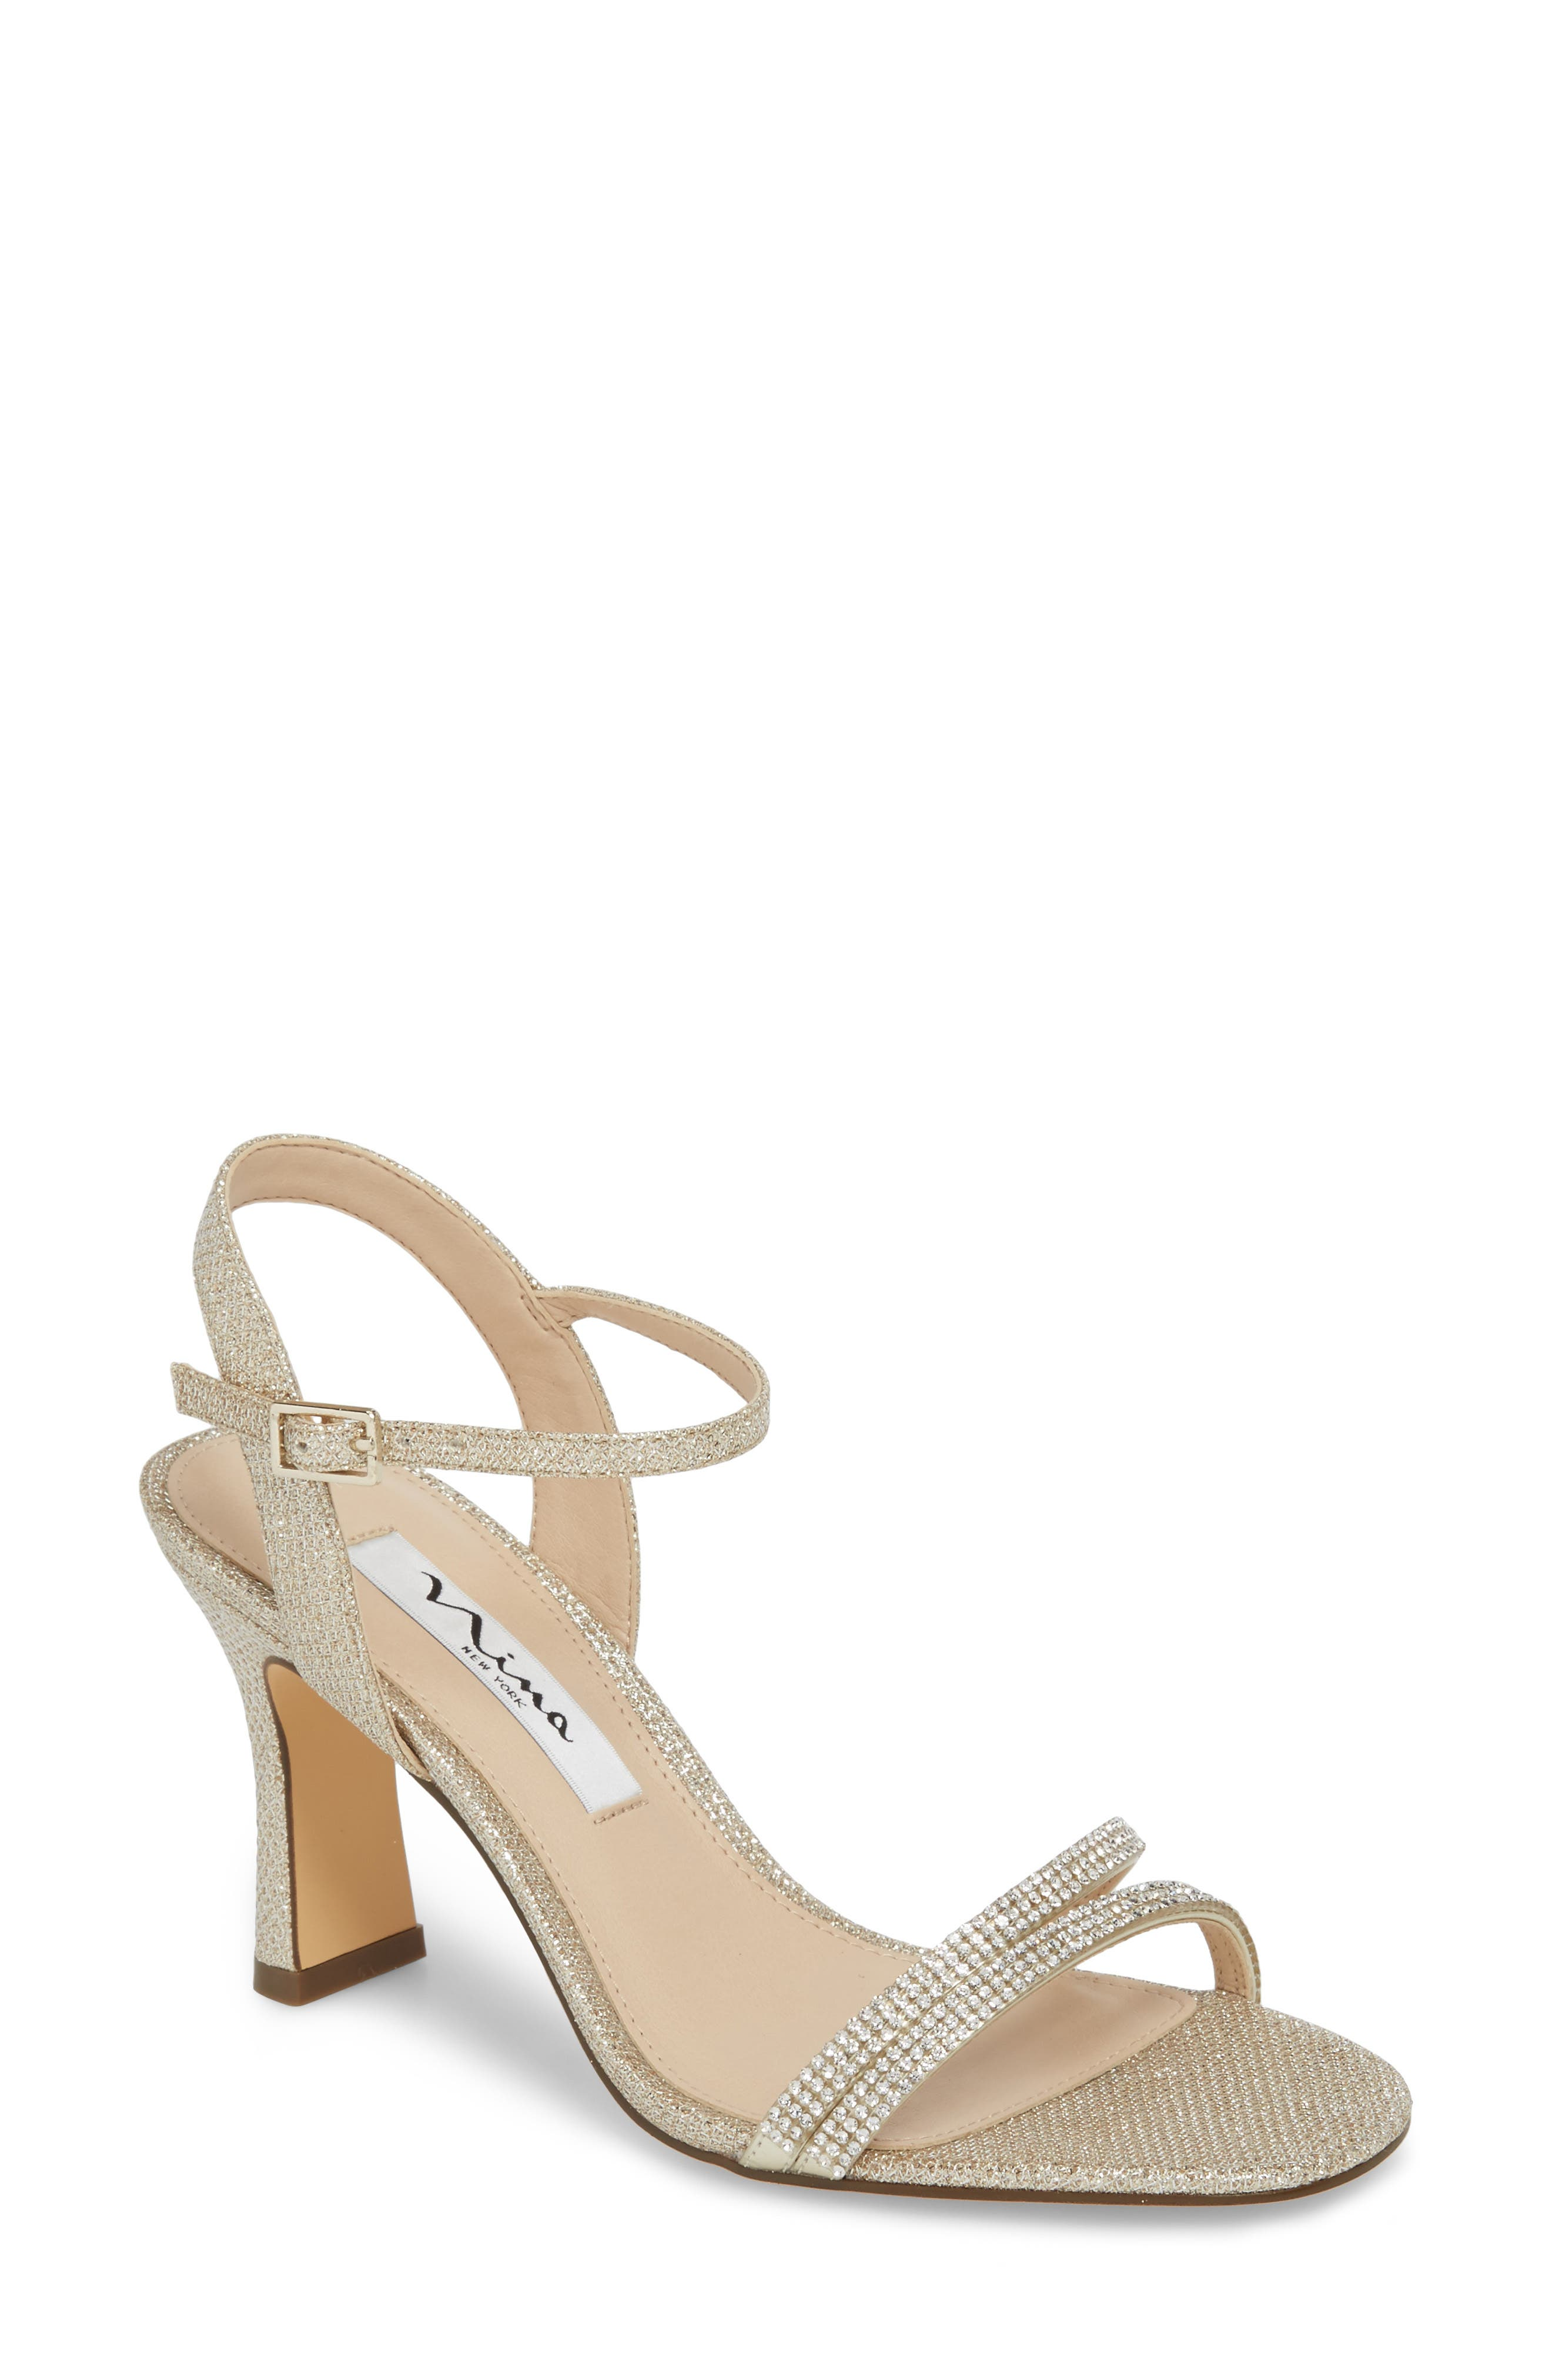 Avalon Ankle Strap Sandal,                             Main thumbnail 3, color,